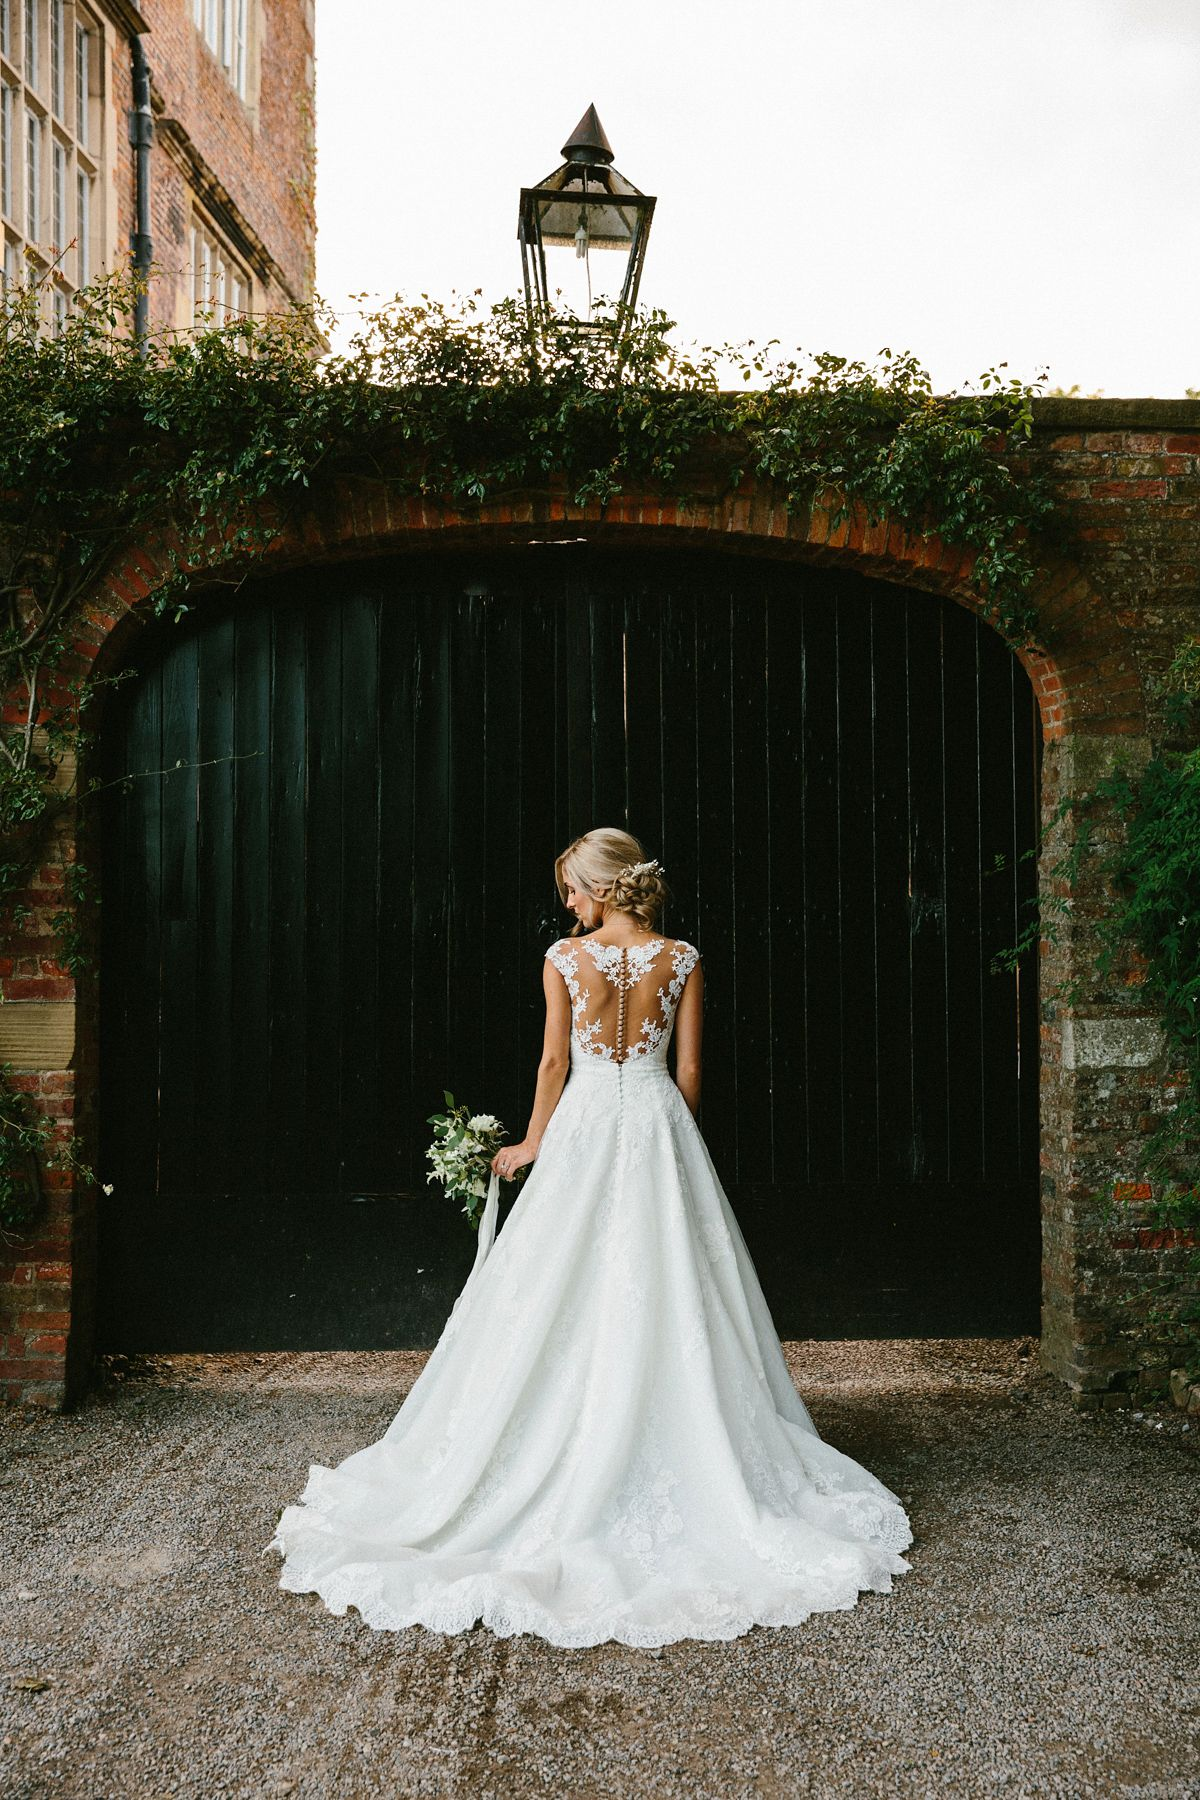 A Pronovias Gown for a Rustic Italian Wedding in North Yorkshire ...